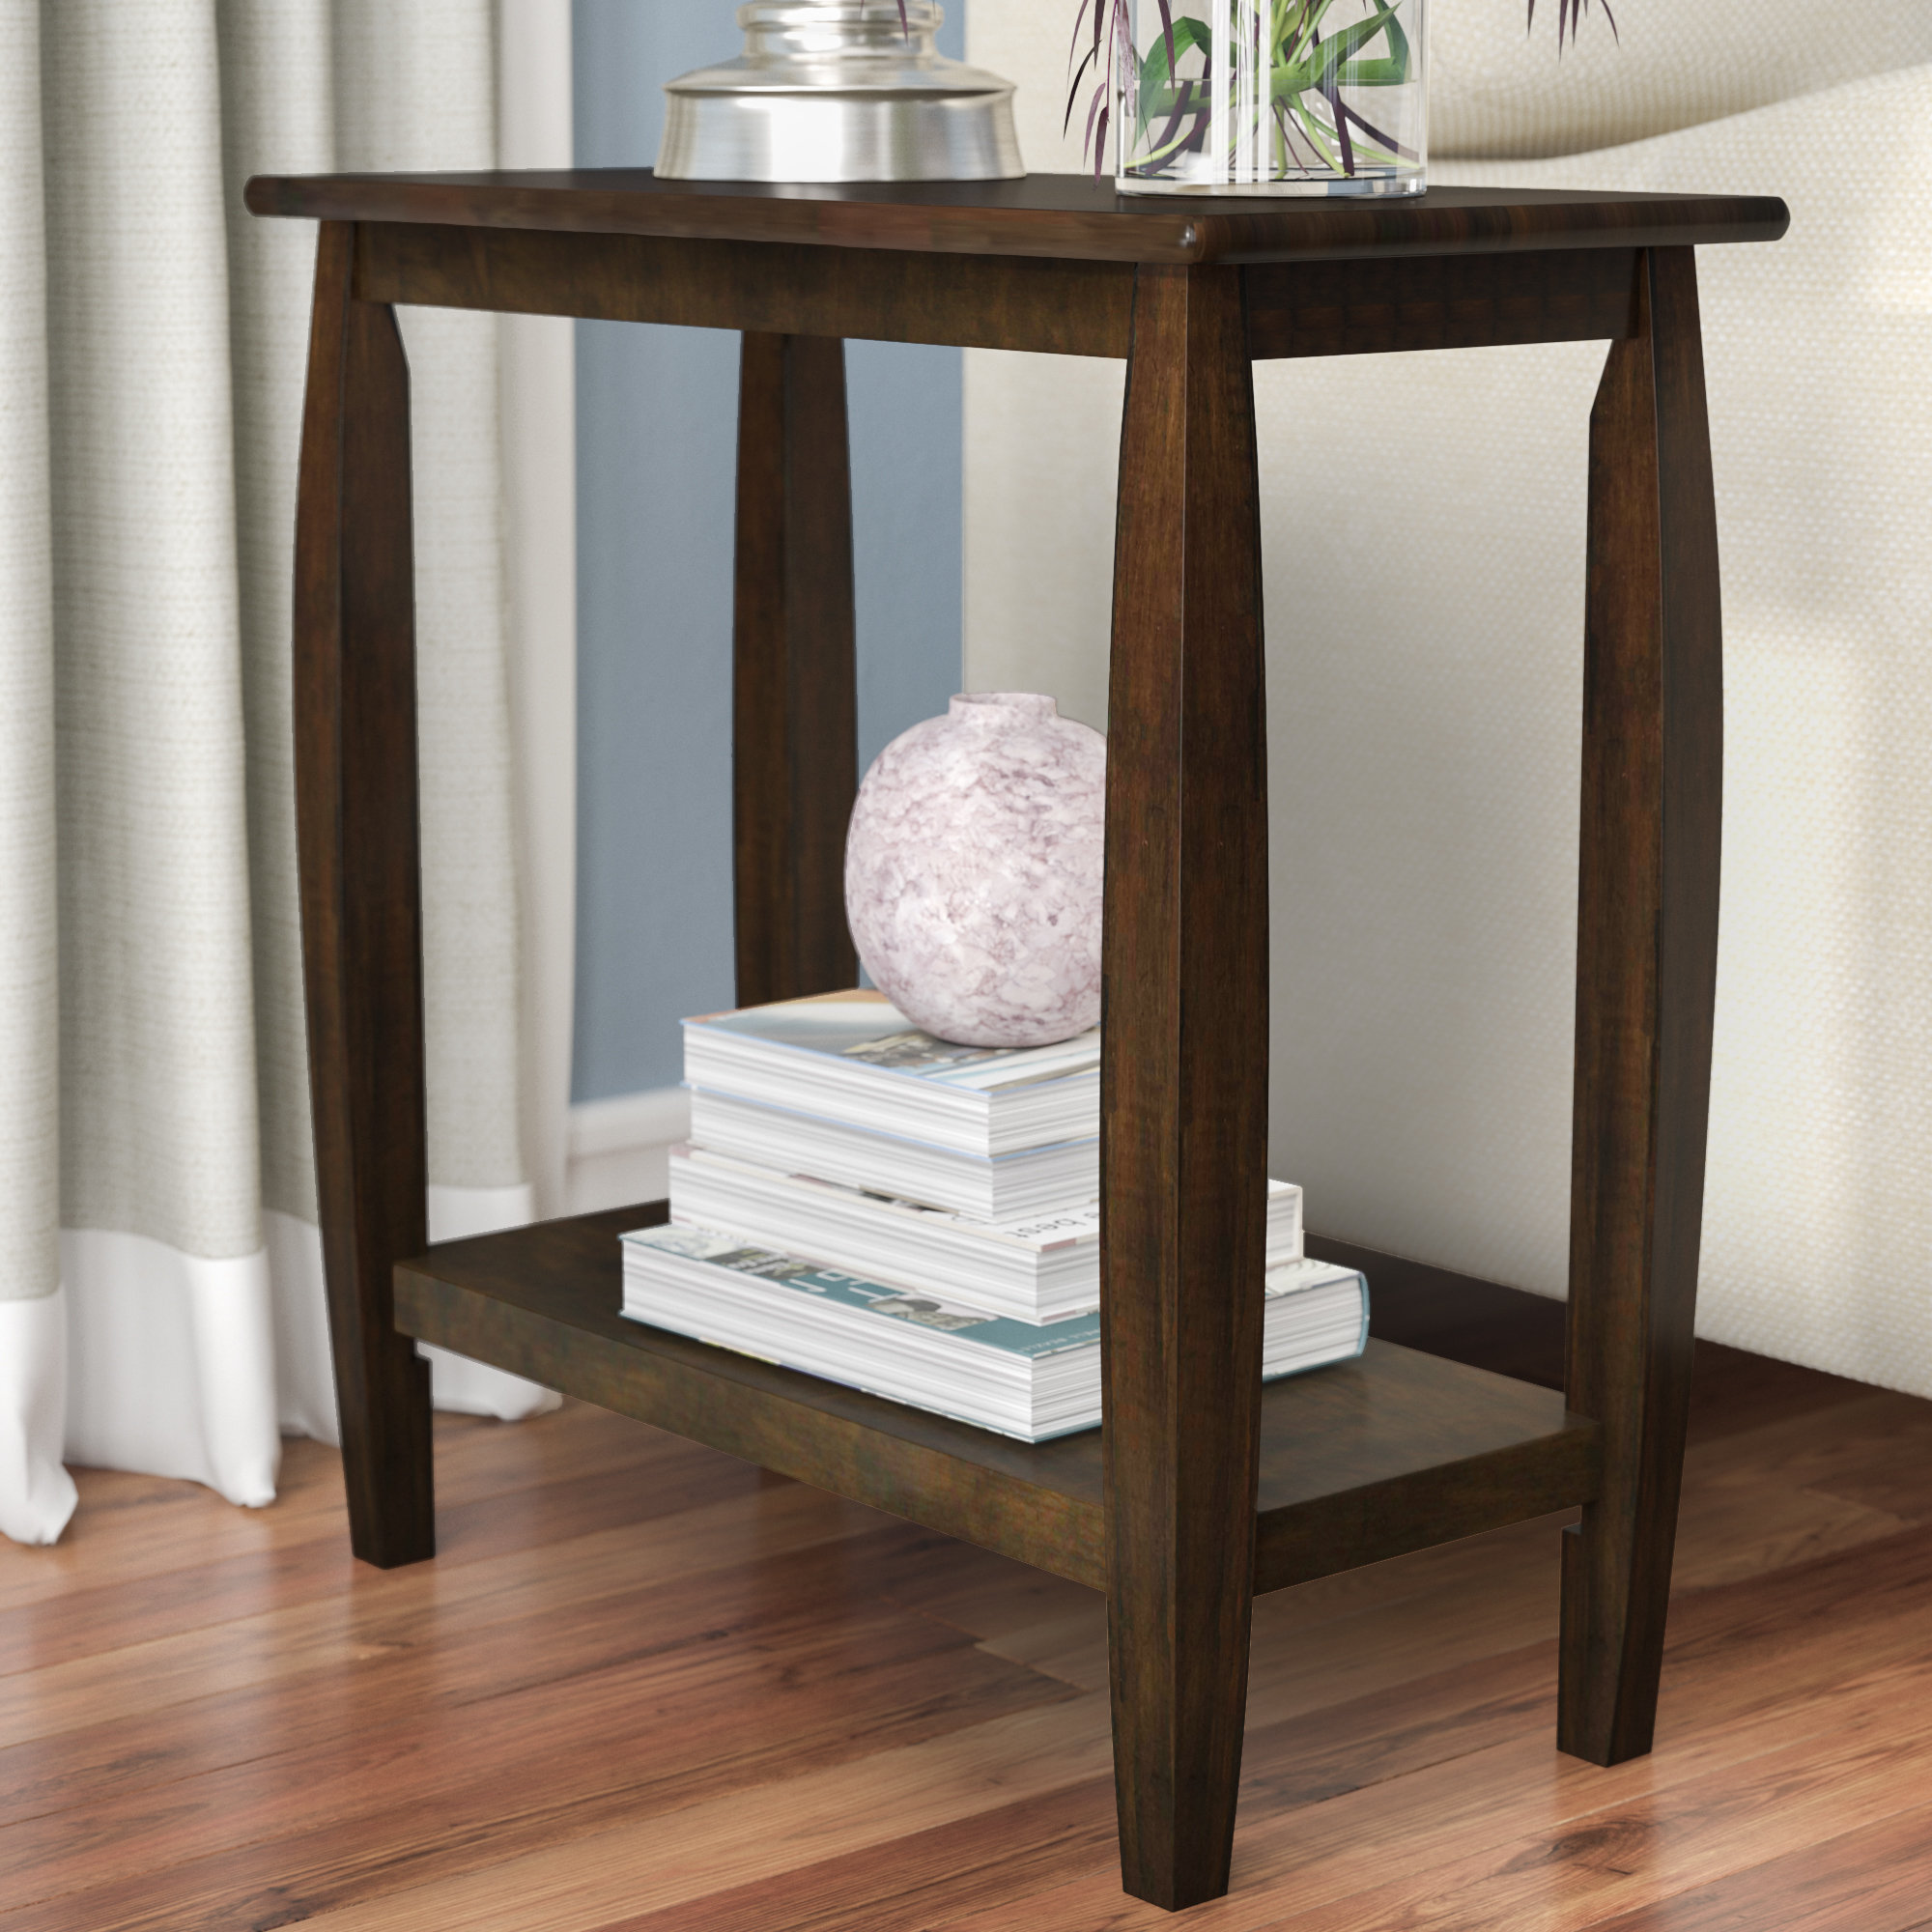 small end tables you love aldan table ifrane accent barn door entry stool target furniture nautical light fixtures indoor inch round decorator metal home decor tennis winsome with